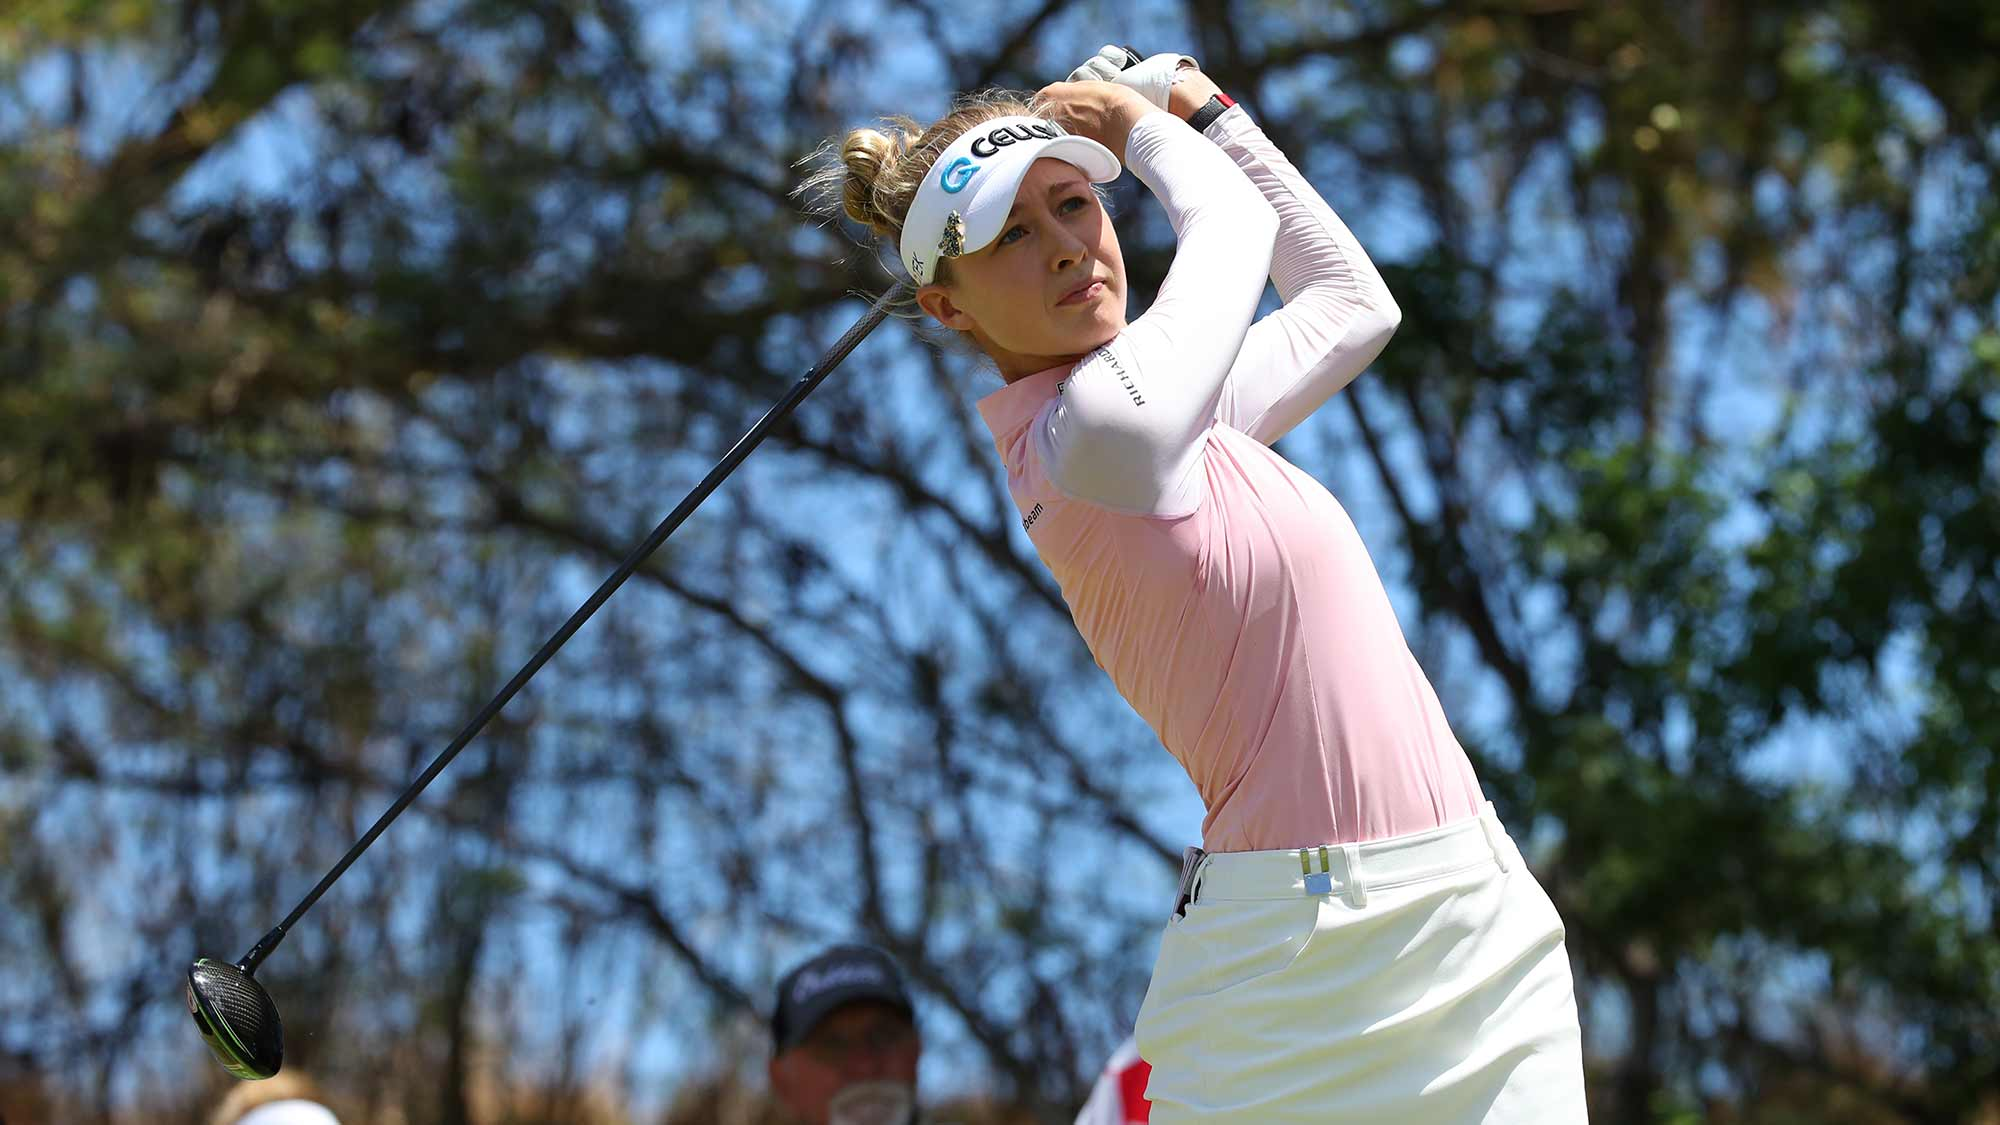 Nelly Korda watches her drive on the fifth hole during the third round of the LOTTE Championship on April 20, 2019 in Kapolei, Hawaii